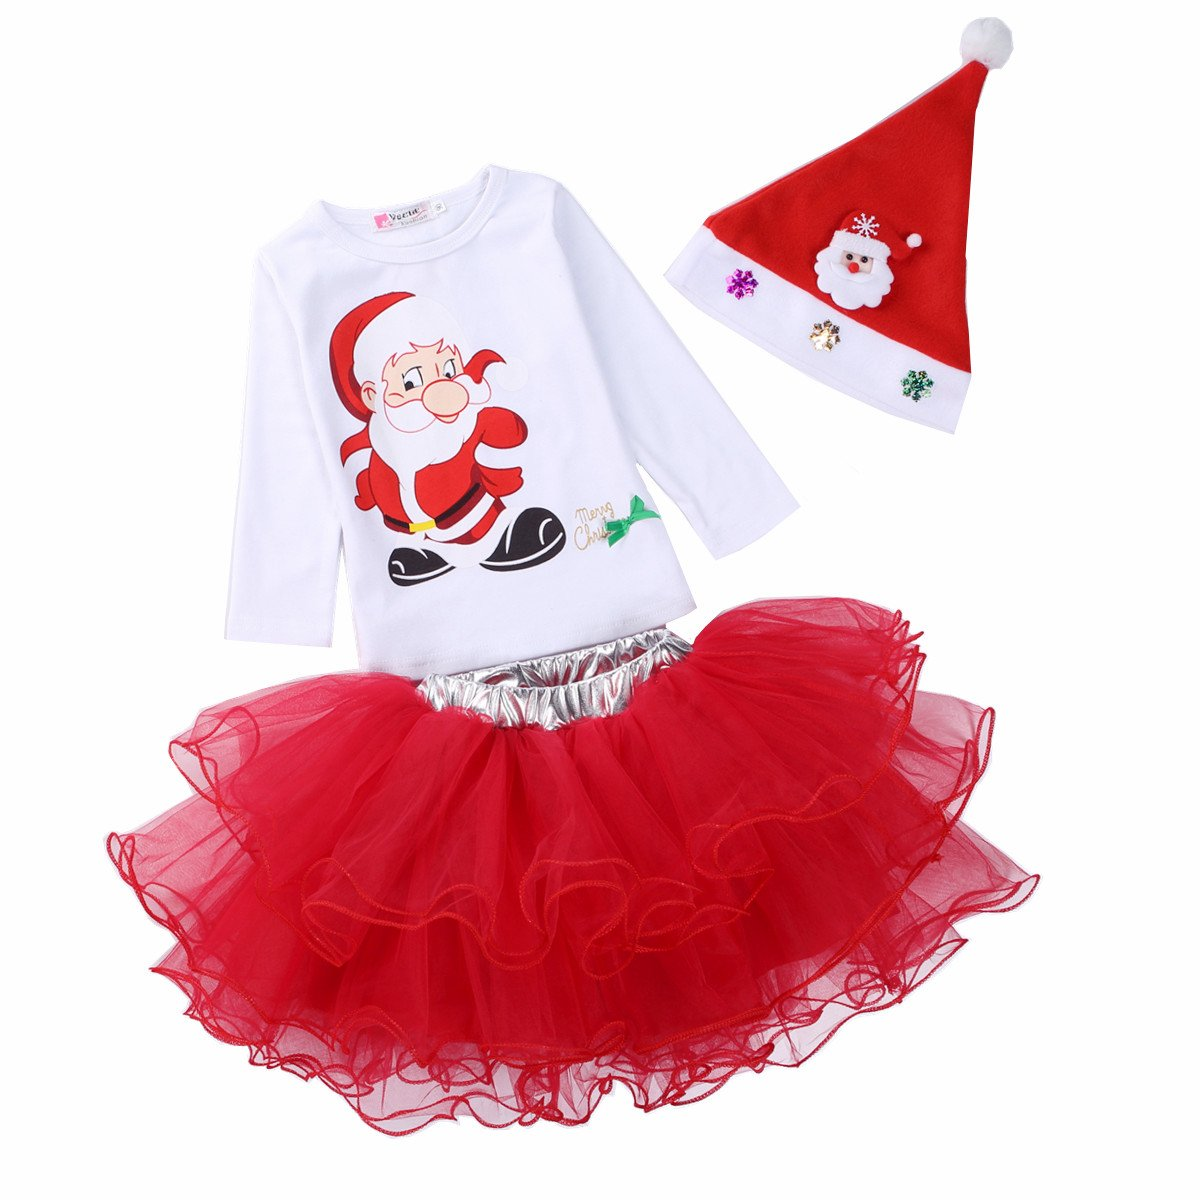 Little Girls' 3-piece Set Shirring Skirt and Santa T-shirt with Christmas Hat BWH-112670